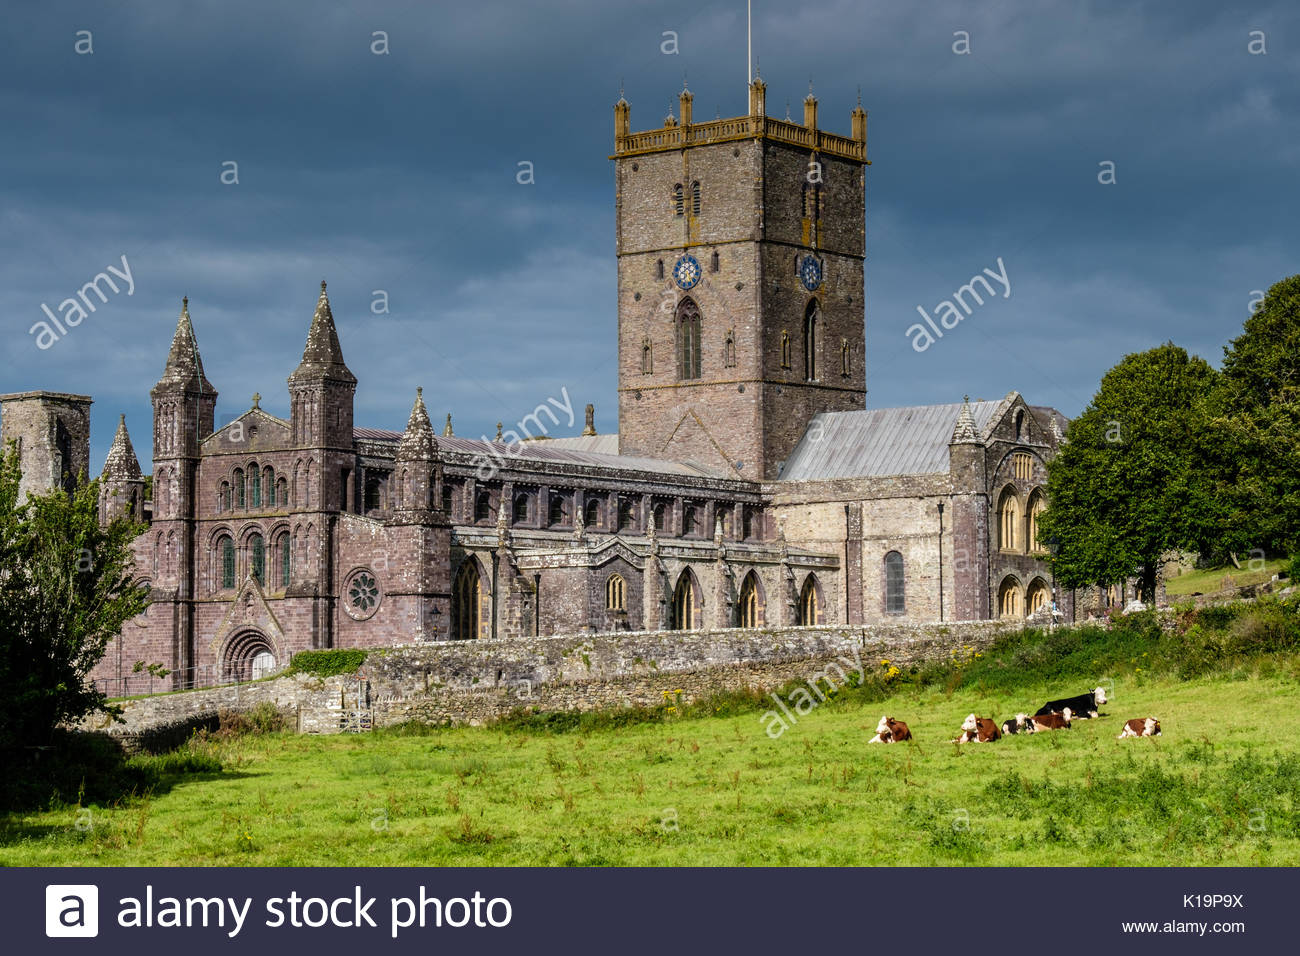 St Davids Head St Davids (Tyddewi), St Davids Cathedral Clock Tower Stock Photos & St Davids Cathedral ...